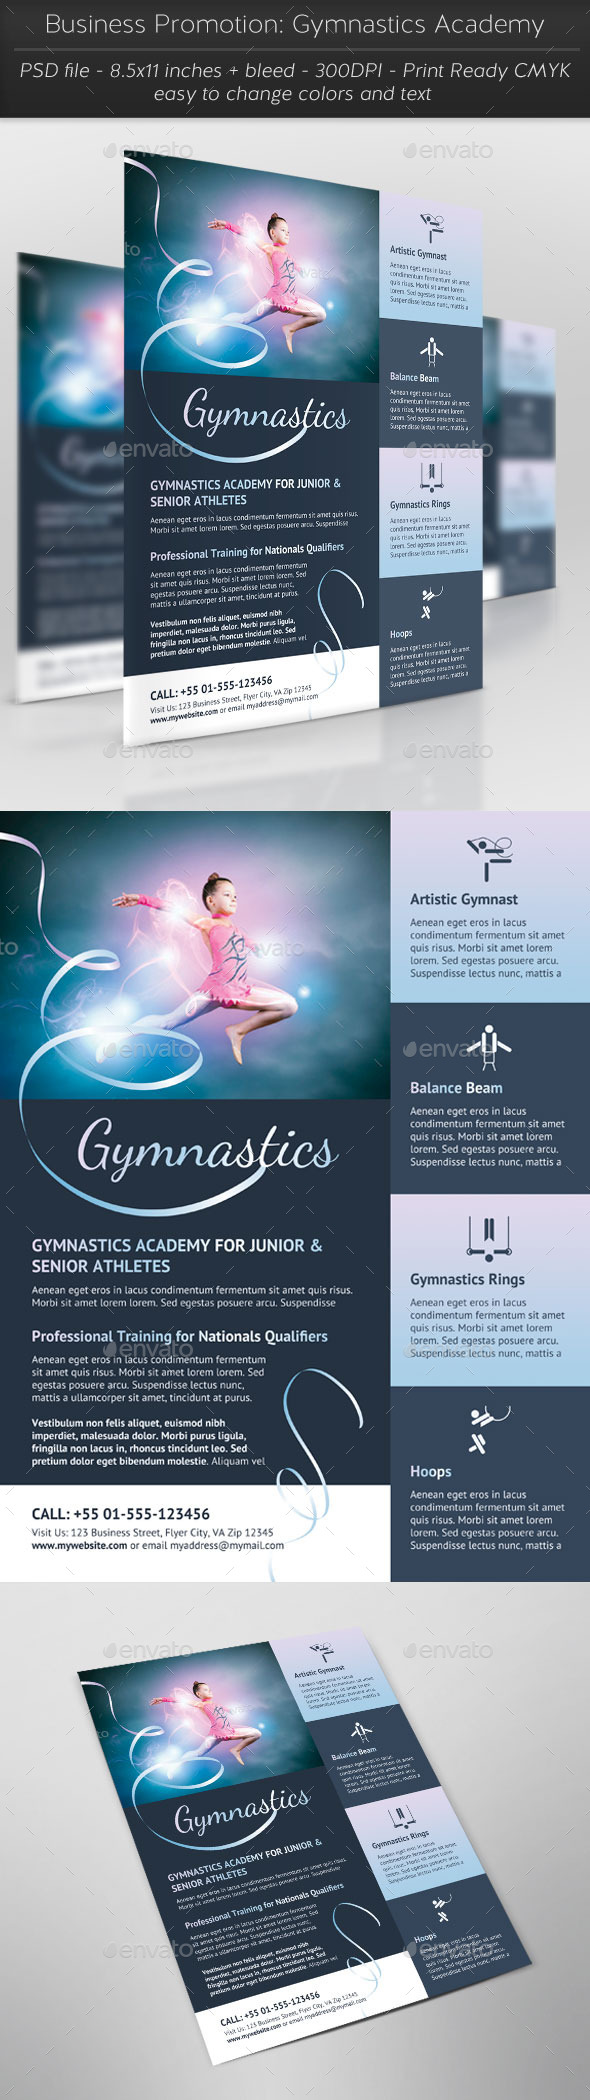 Business Promotion: Gymnastics Academy - Miscellaneous Events